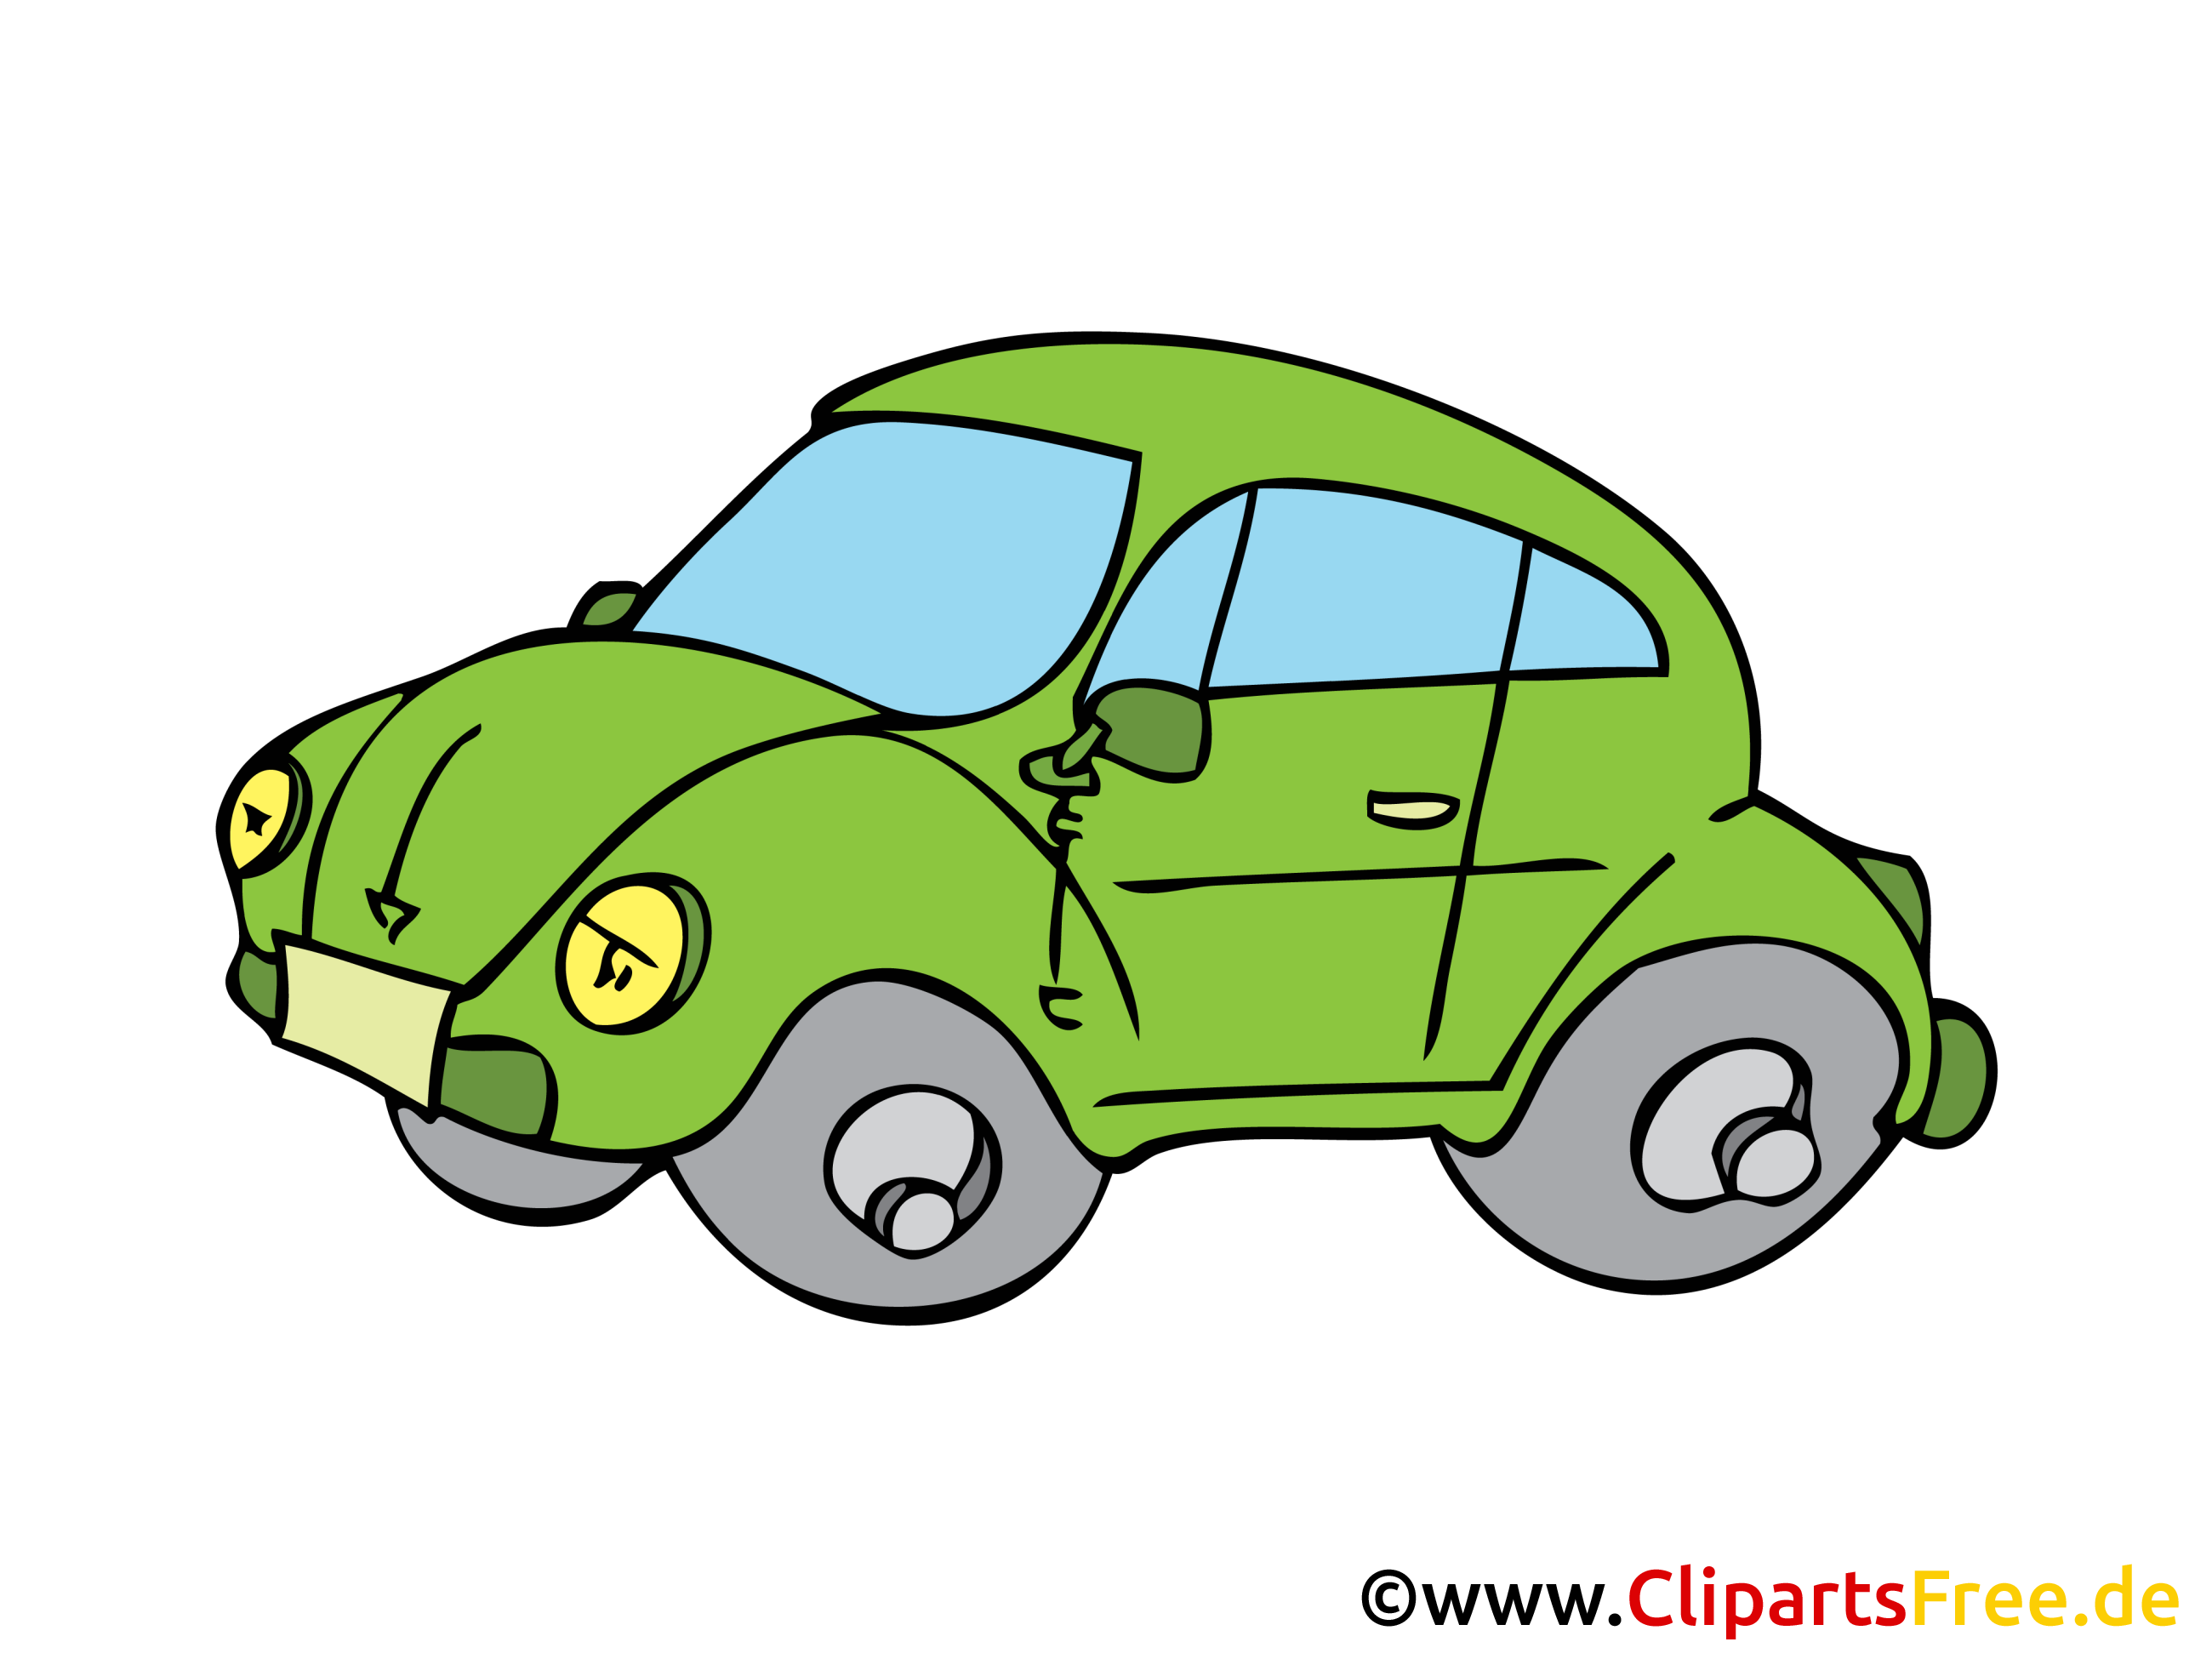 Pkw clipart - Clipground